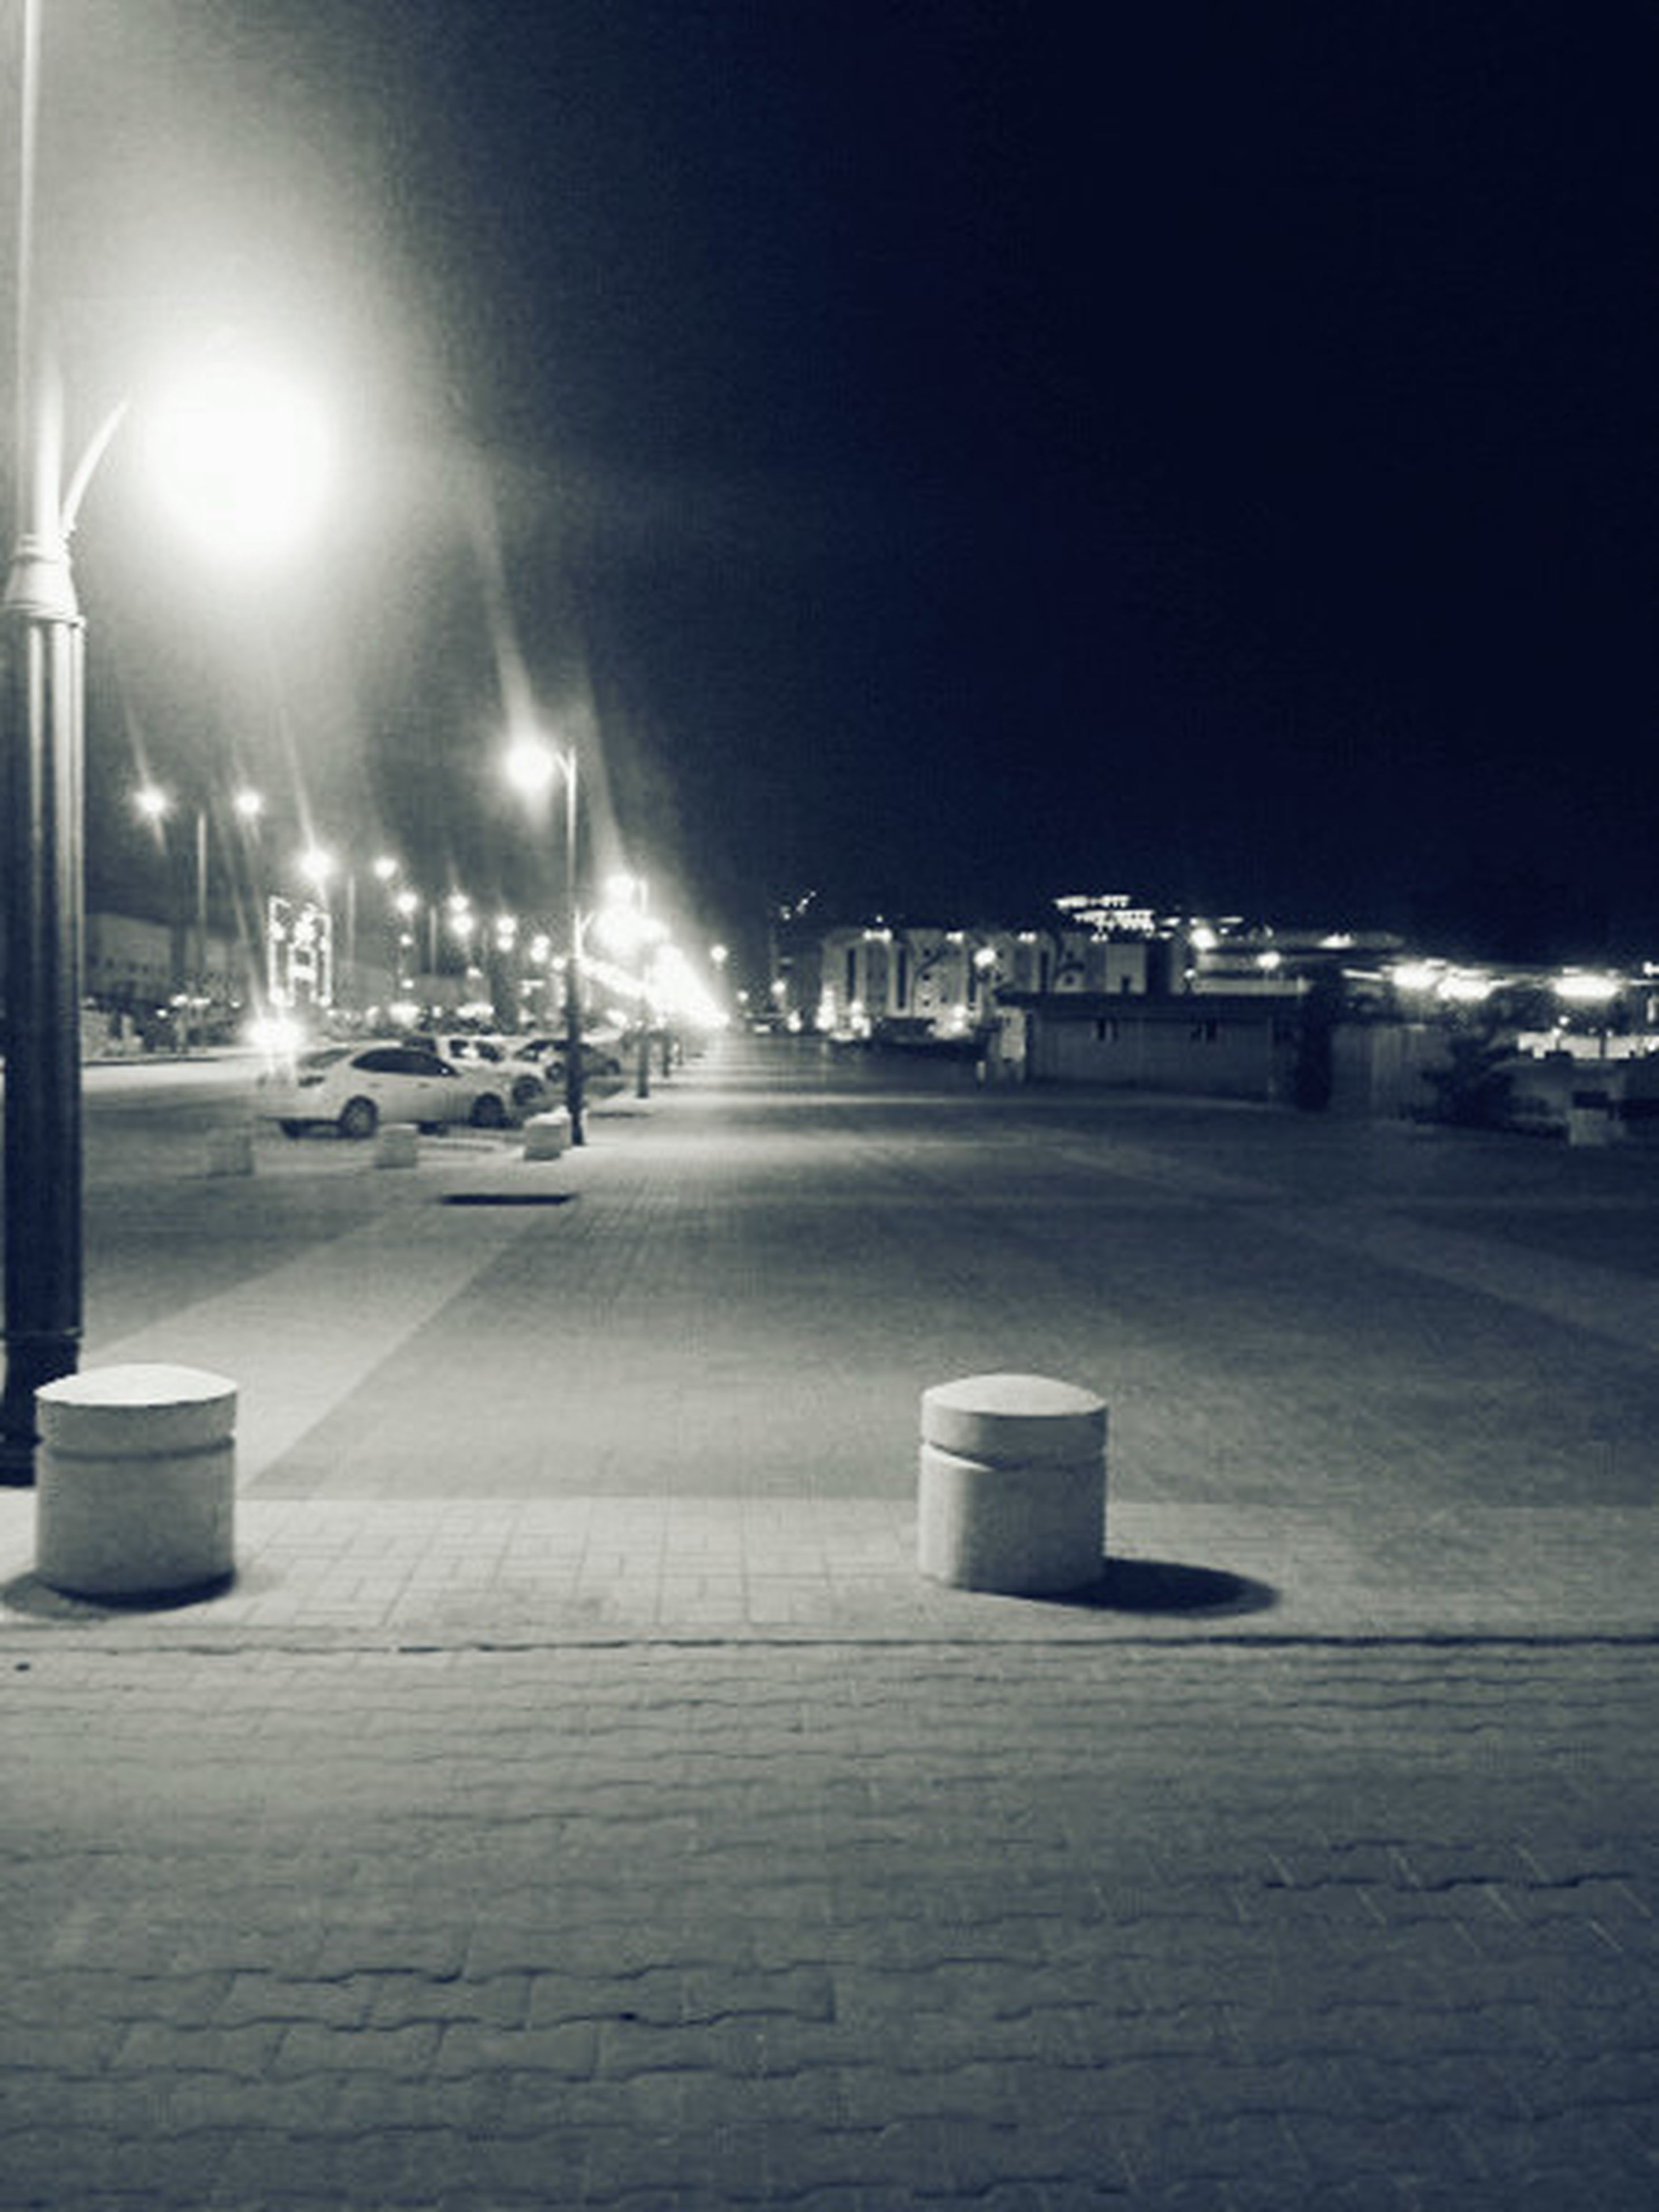 illuminated, night, transportation, street light, street, building exterior, city, architecture, car, built structure, road, the way forward, land vehicle, lighting equipment, mode of transport, city street, sky, road marking, diminishing perspective, city life